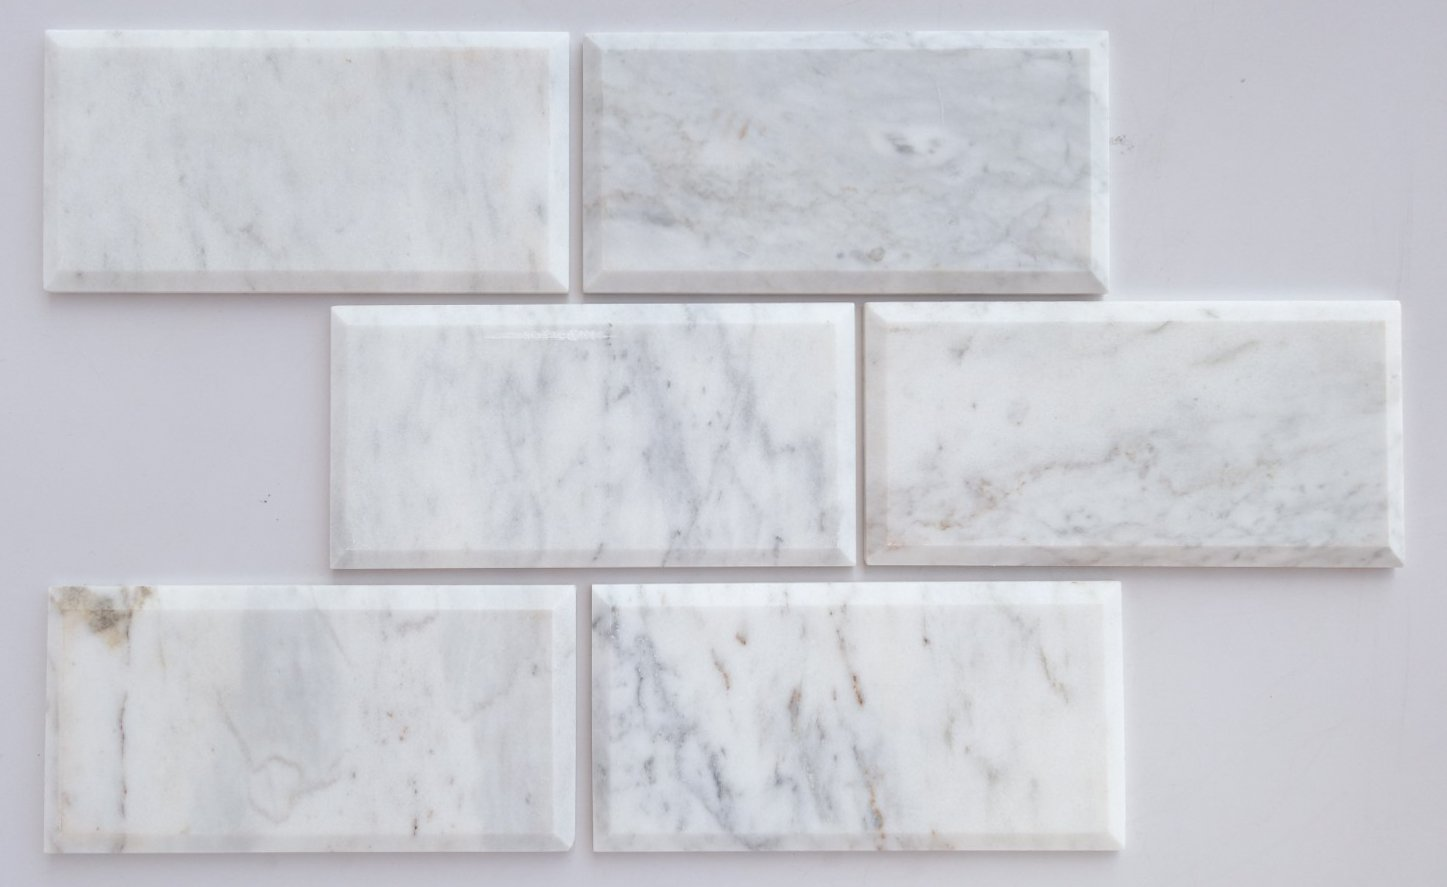 Bianco Venatino Marble 4X8 Deep - Beveled & Honed Subway Tile - STANDARD QUALITY - Lot of 20 Sq. Ft.